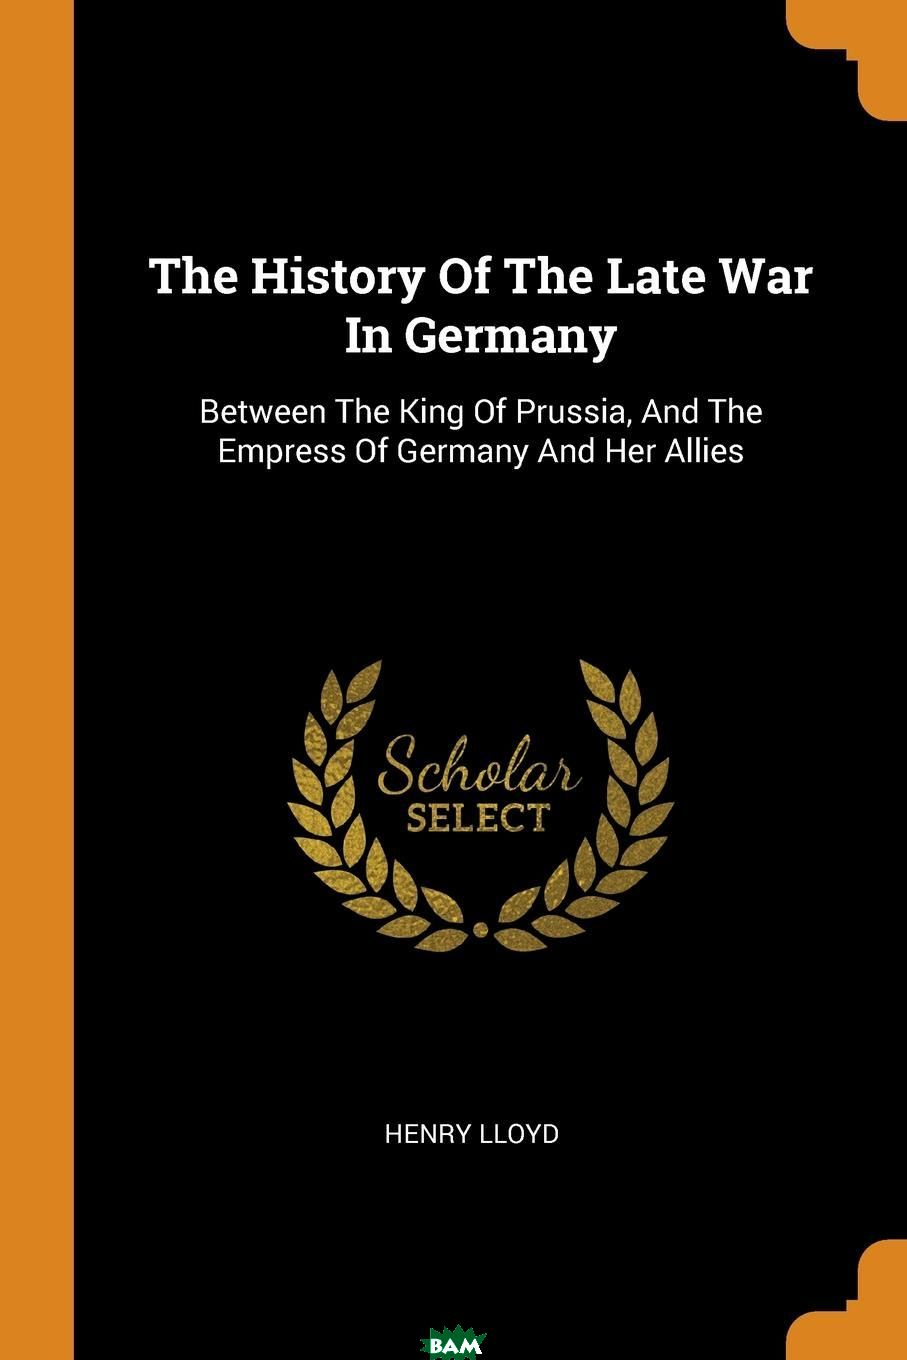 Купить The History Of The Late War In Germany. Between The King Of Prussia, And The Empress Of Germany And Her Allies, Henry Lloyd, 9780353193970